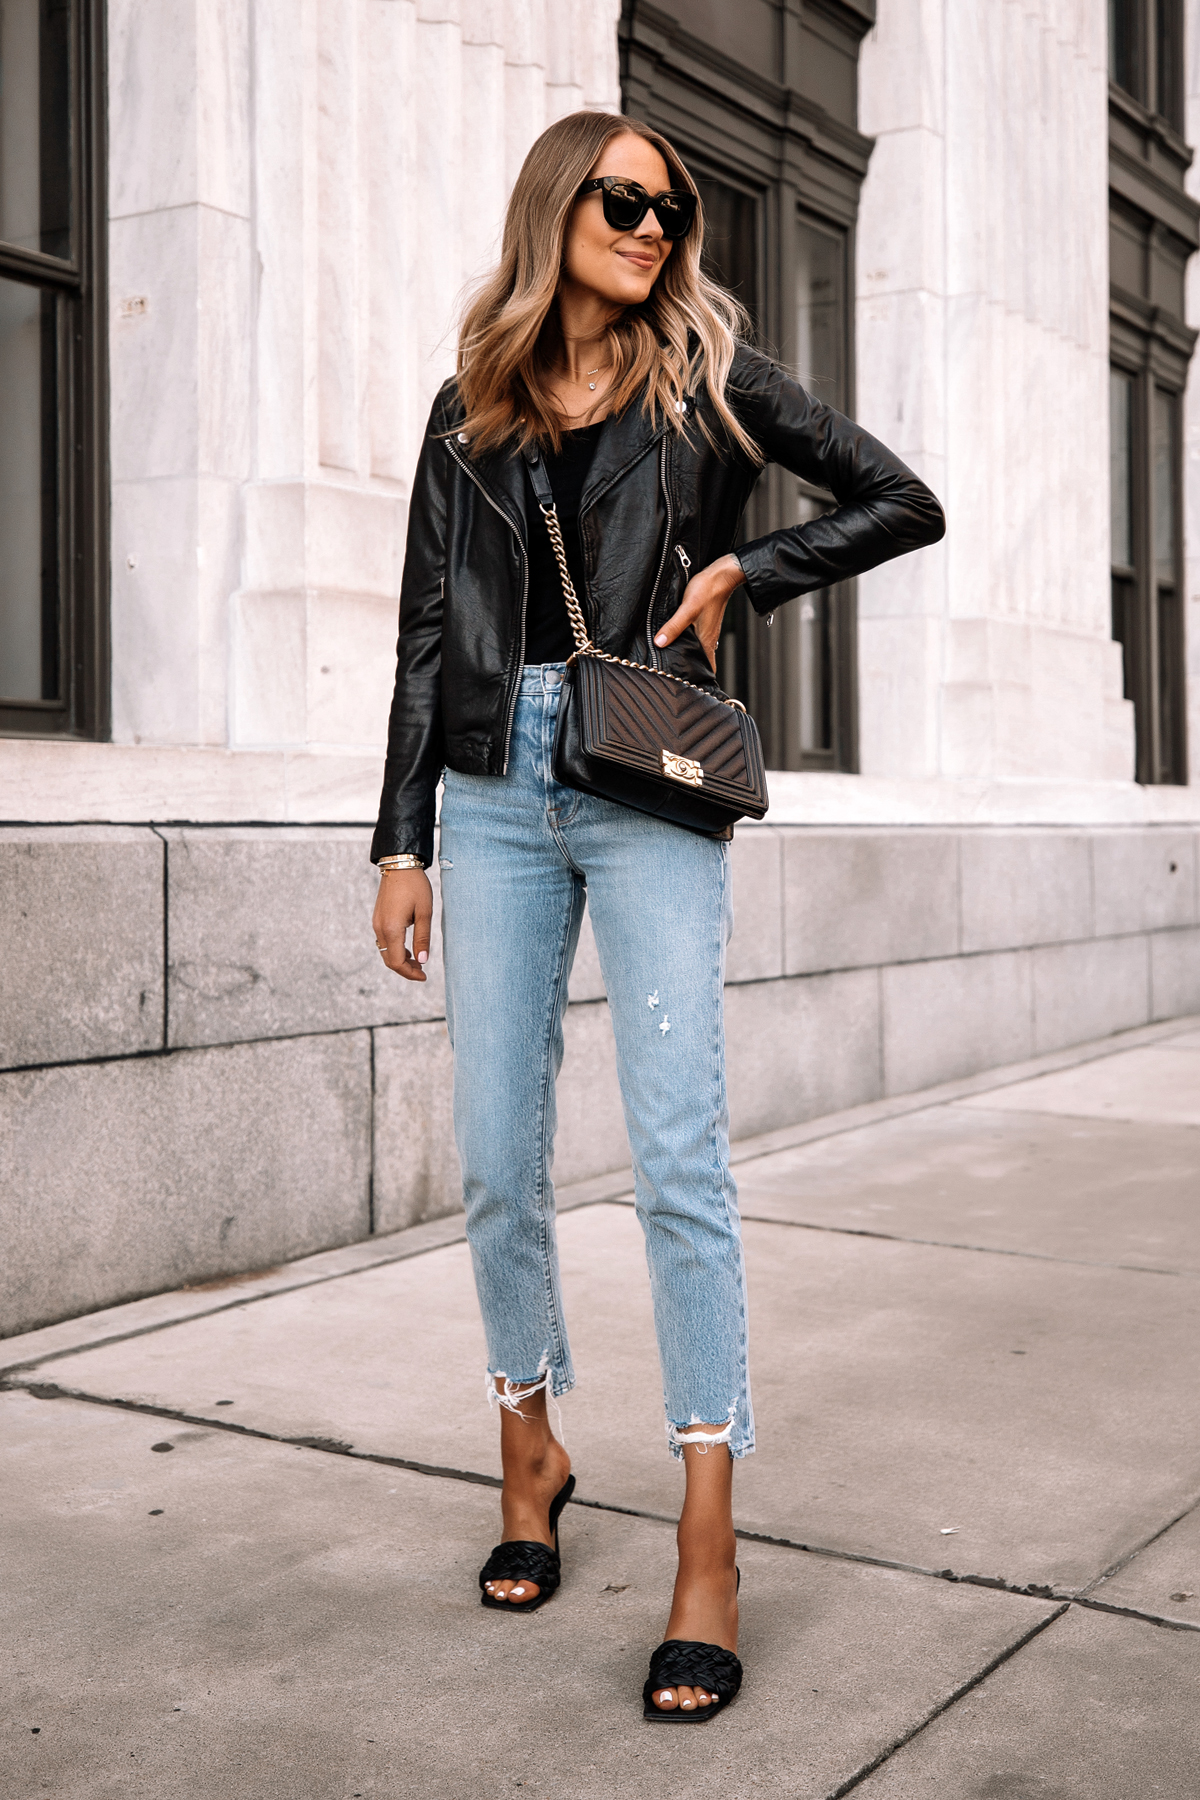 Fashion Jackson Wearing Madewell Black Leather Jacket Black Bodysuit Ripped Jeans Black Woven Heeled Sandals Chanel Black Boy Bag Street Style Outfit 1